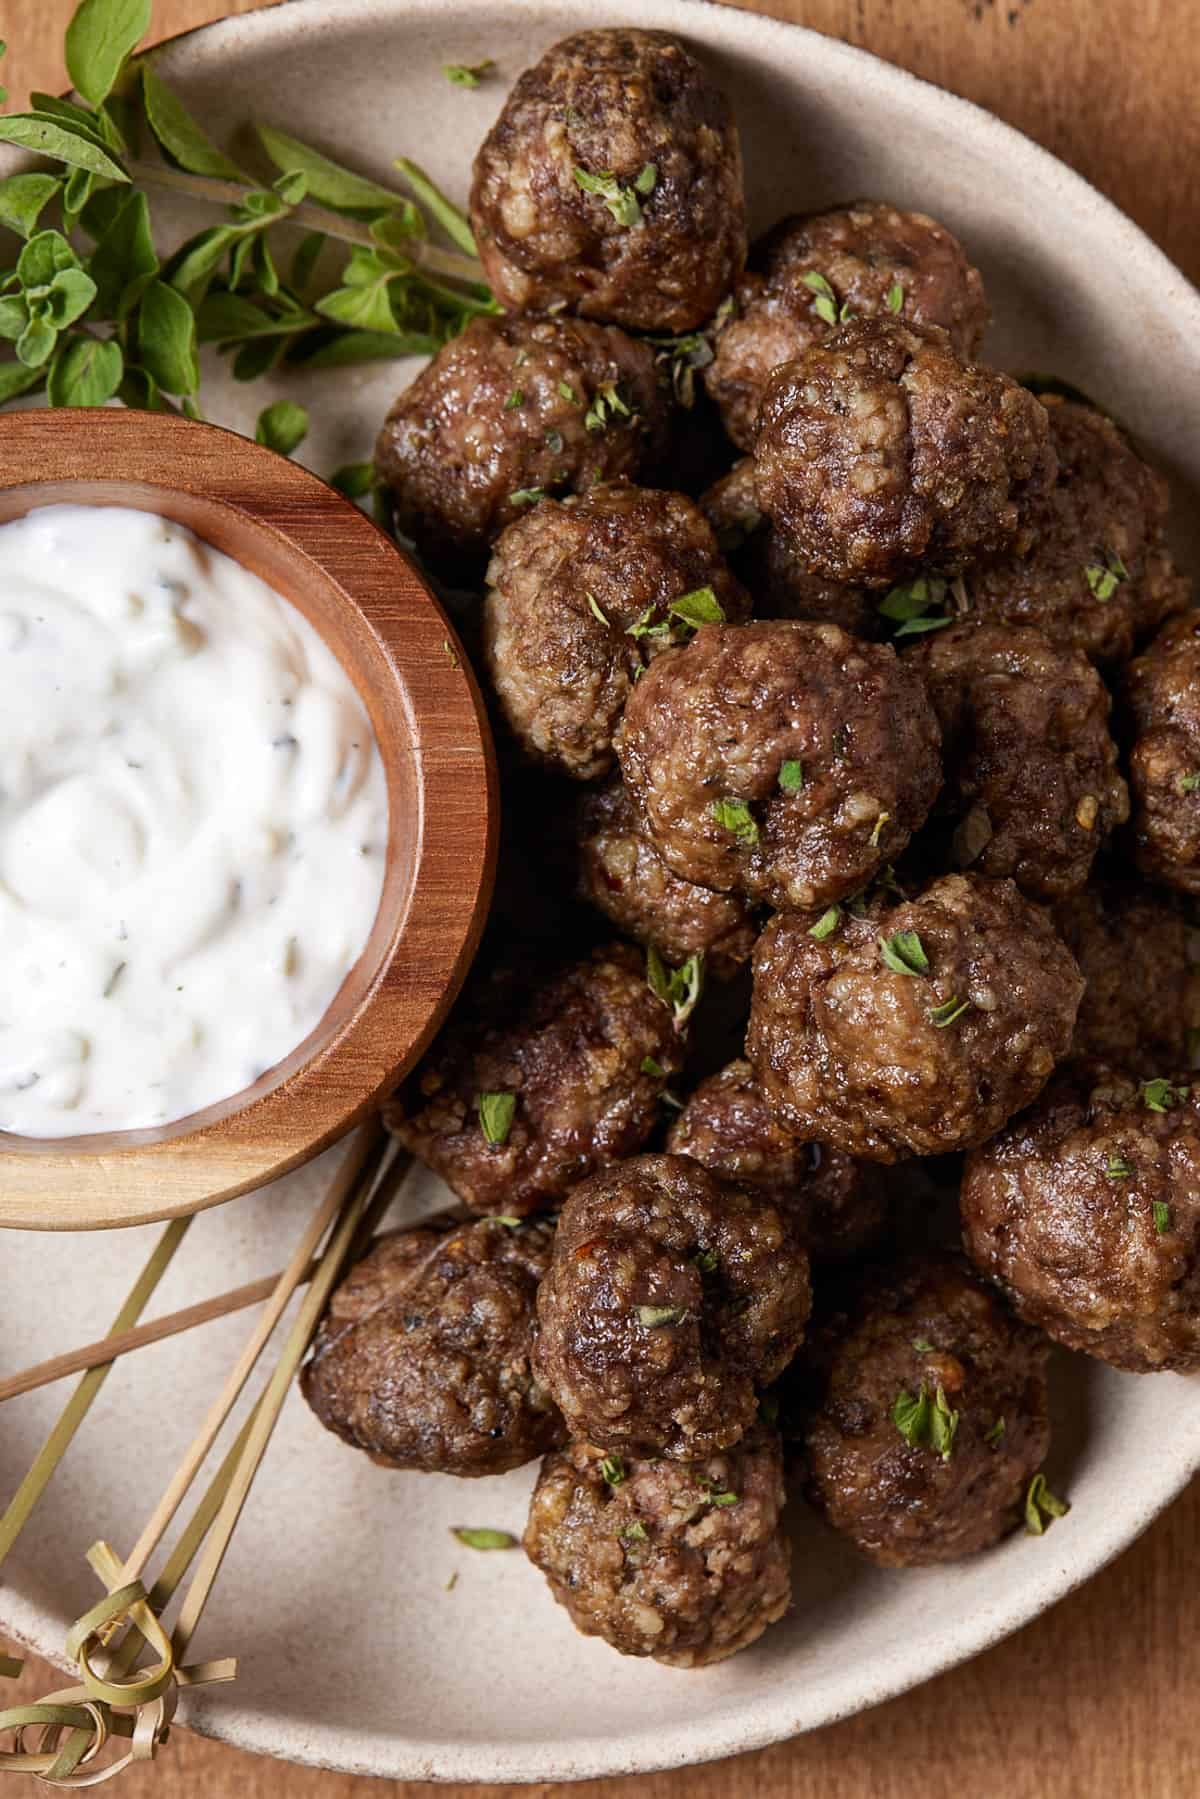 meatballs on a plate with dipping sauce.